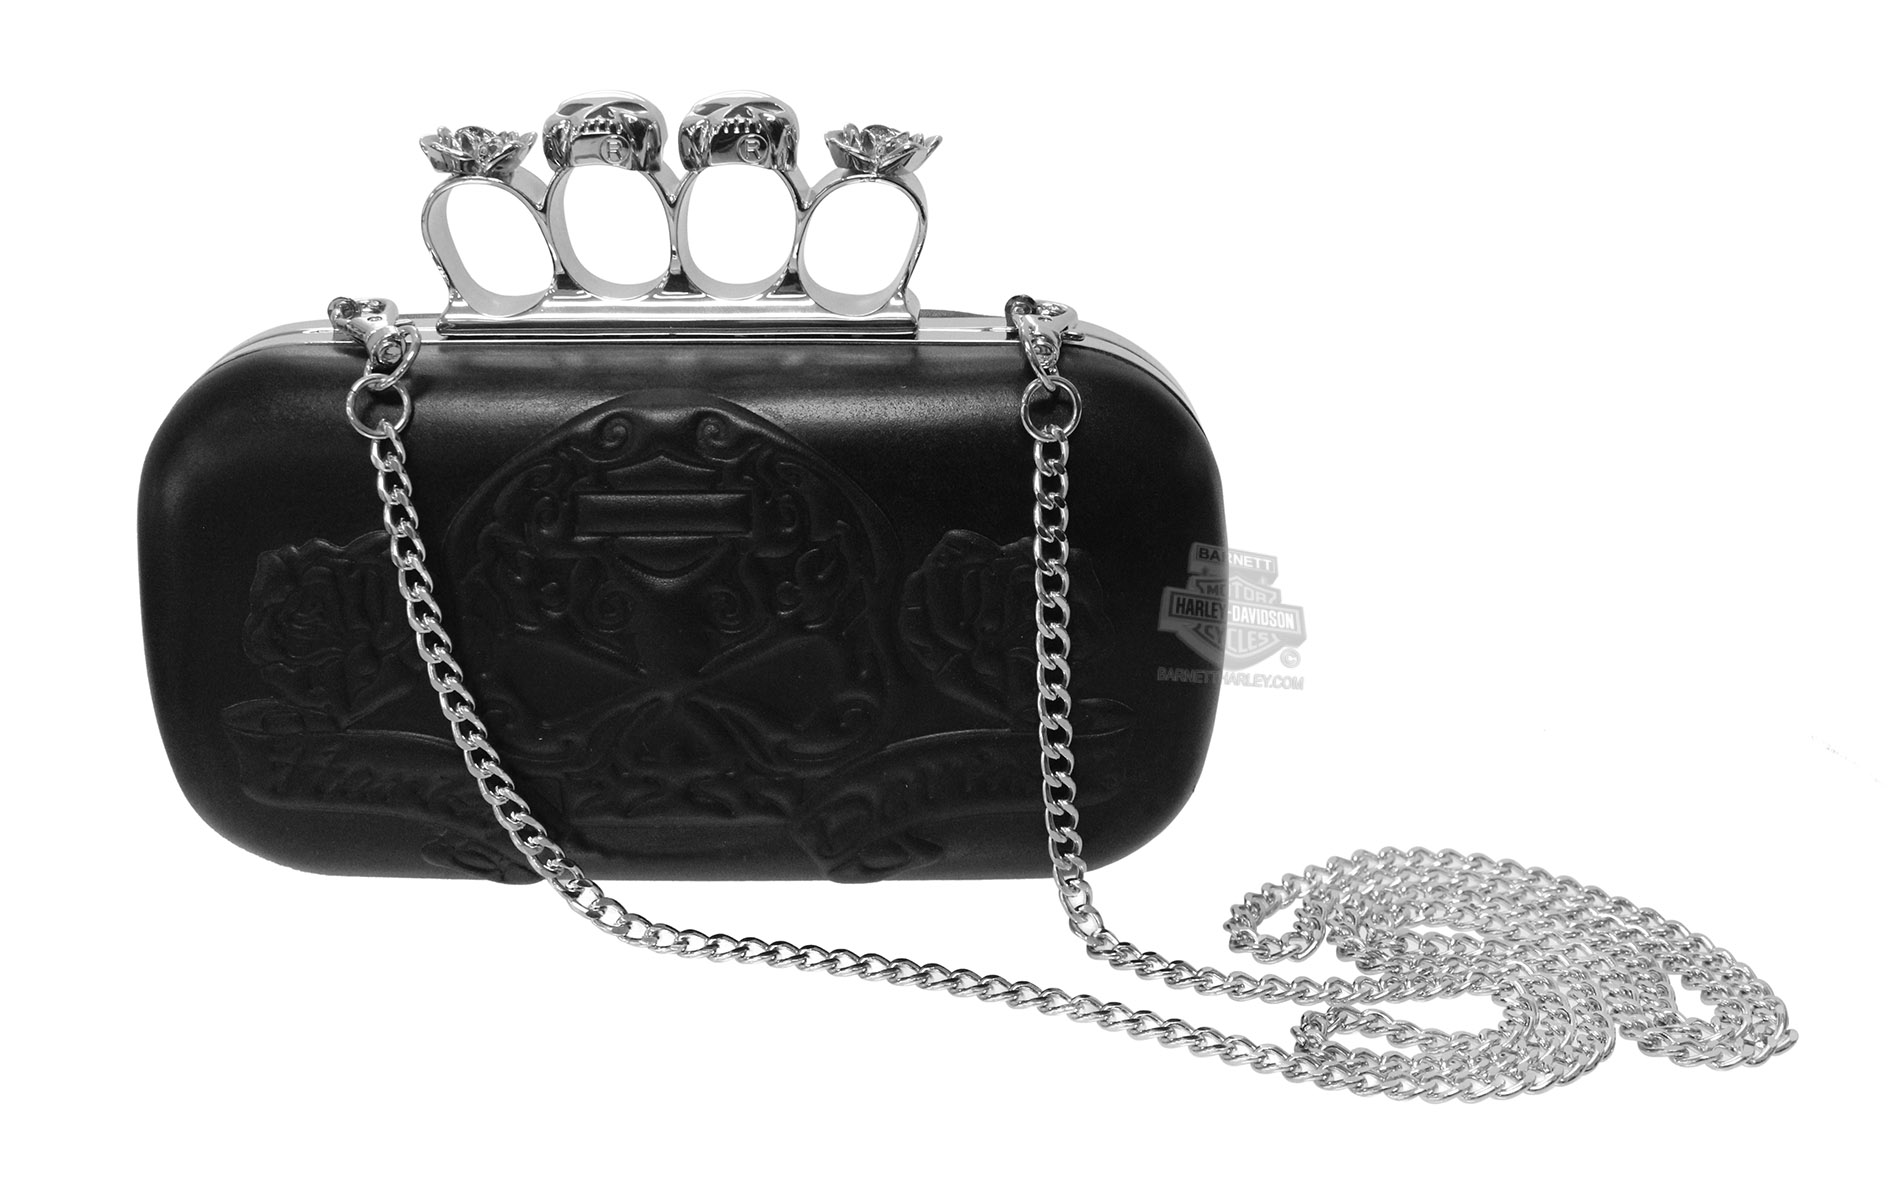 Harley-Davidson® Womens Knuckle Duster Sugar Skull Minaudiere Black Leather Purse by LODIS